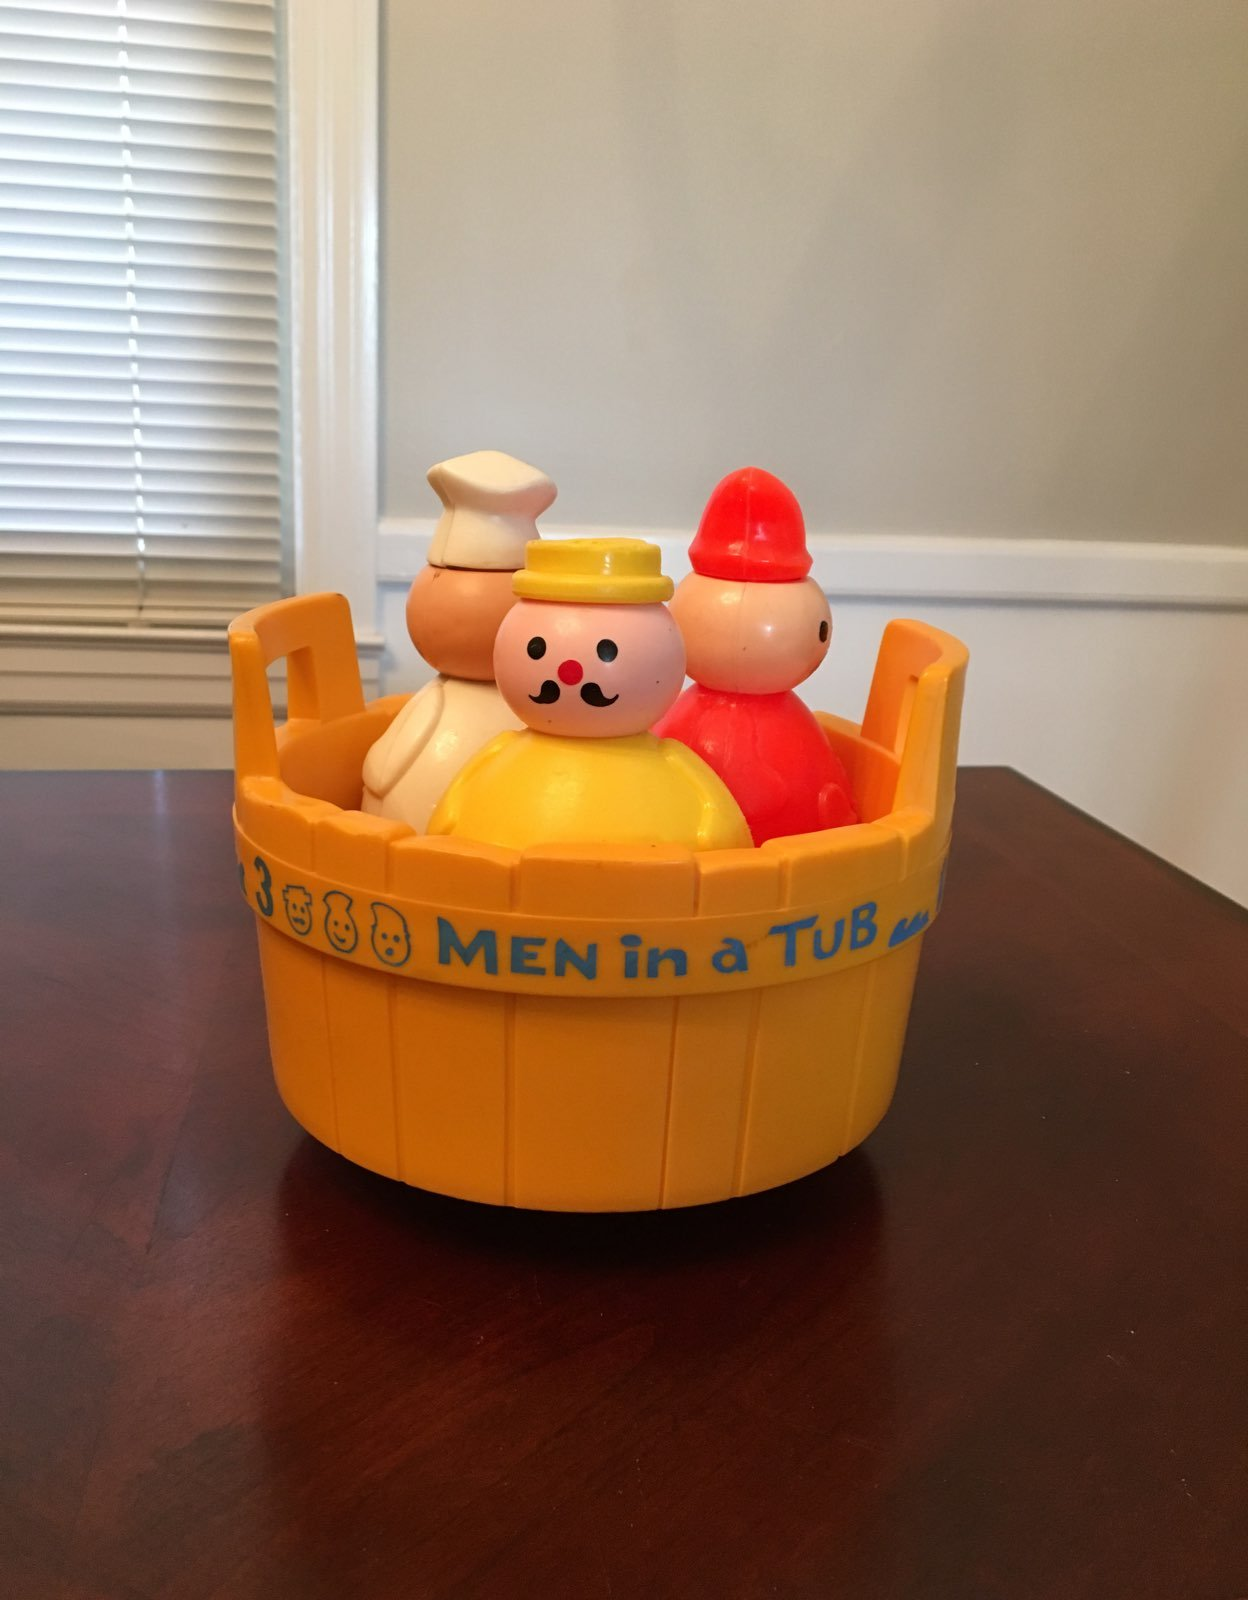 Vintage Fisher Price Bath Toy - Mercari: BUY & SELL THINGS YOU LOVE